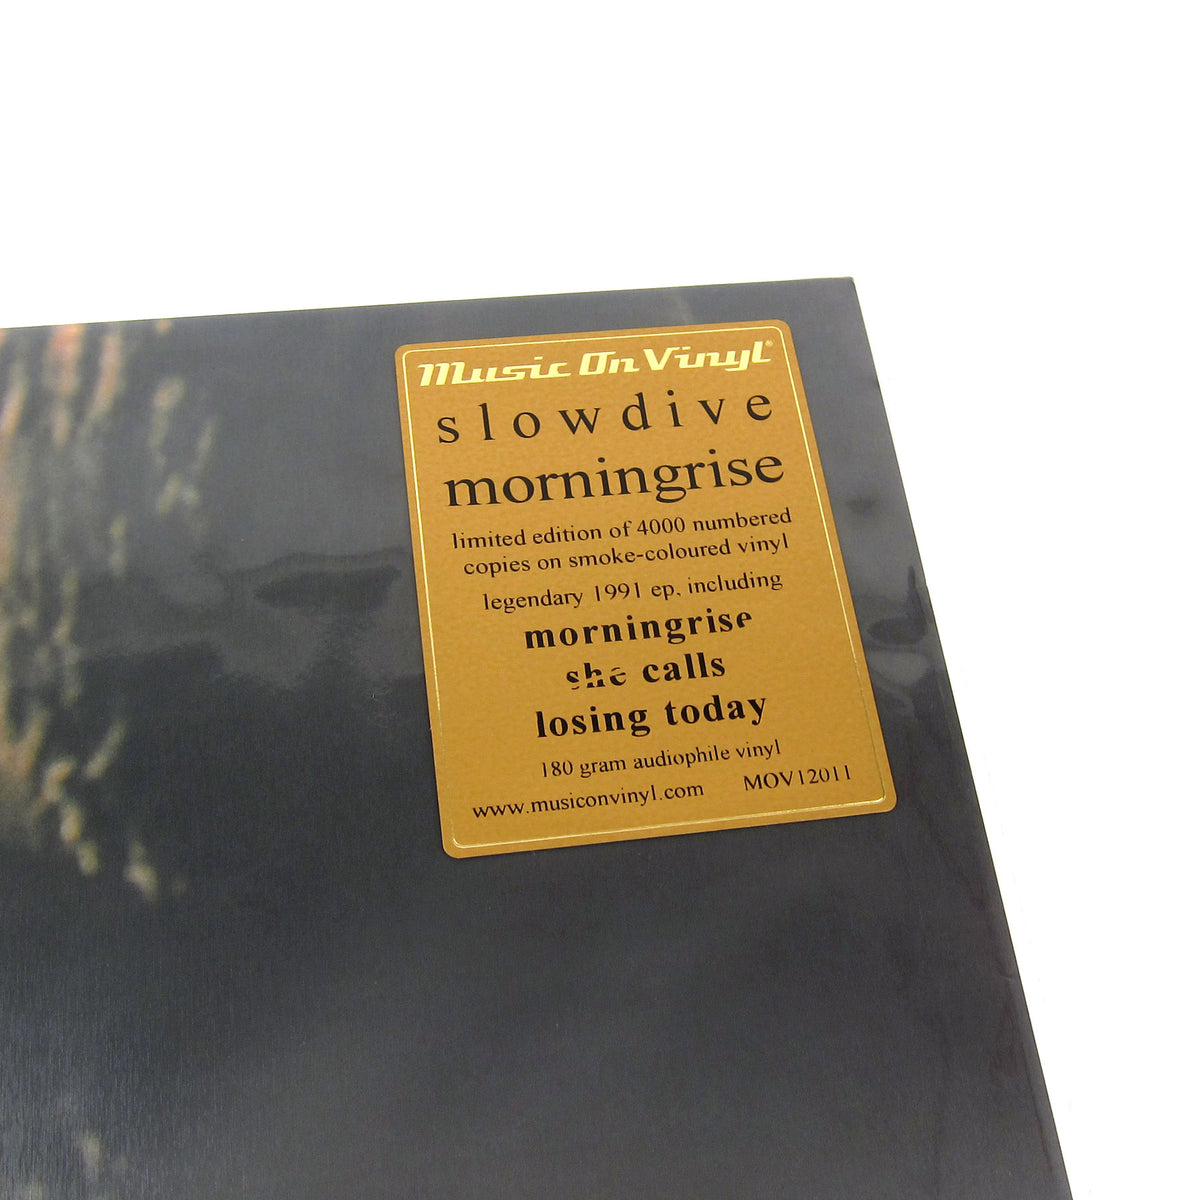 Slowdive: Morningrise (Music On Vinyl 180g, Colored Vinyl)